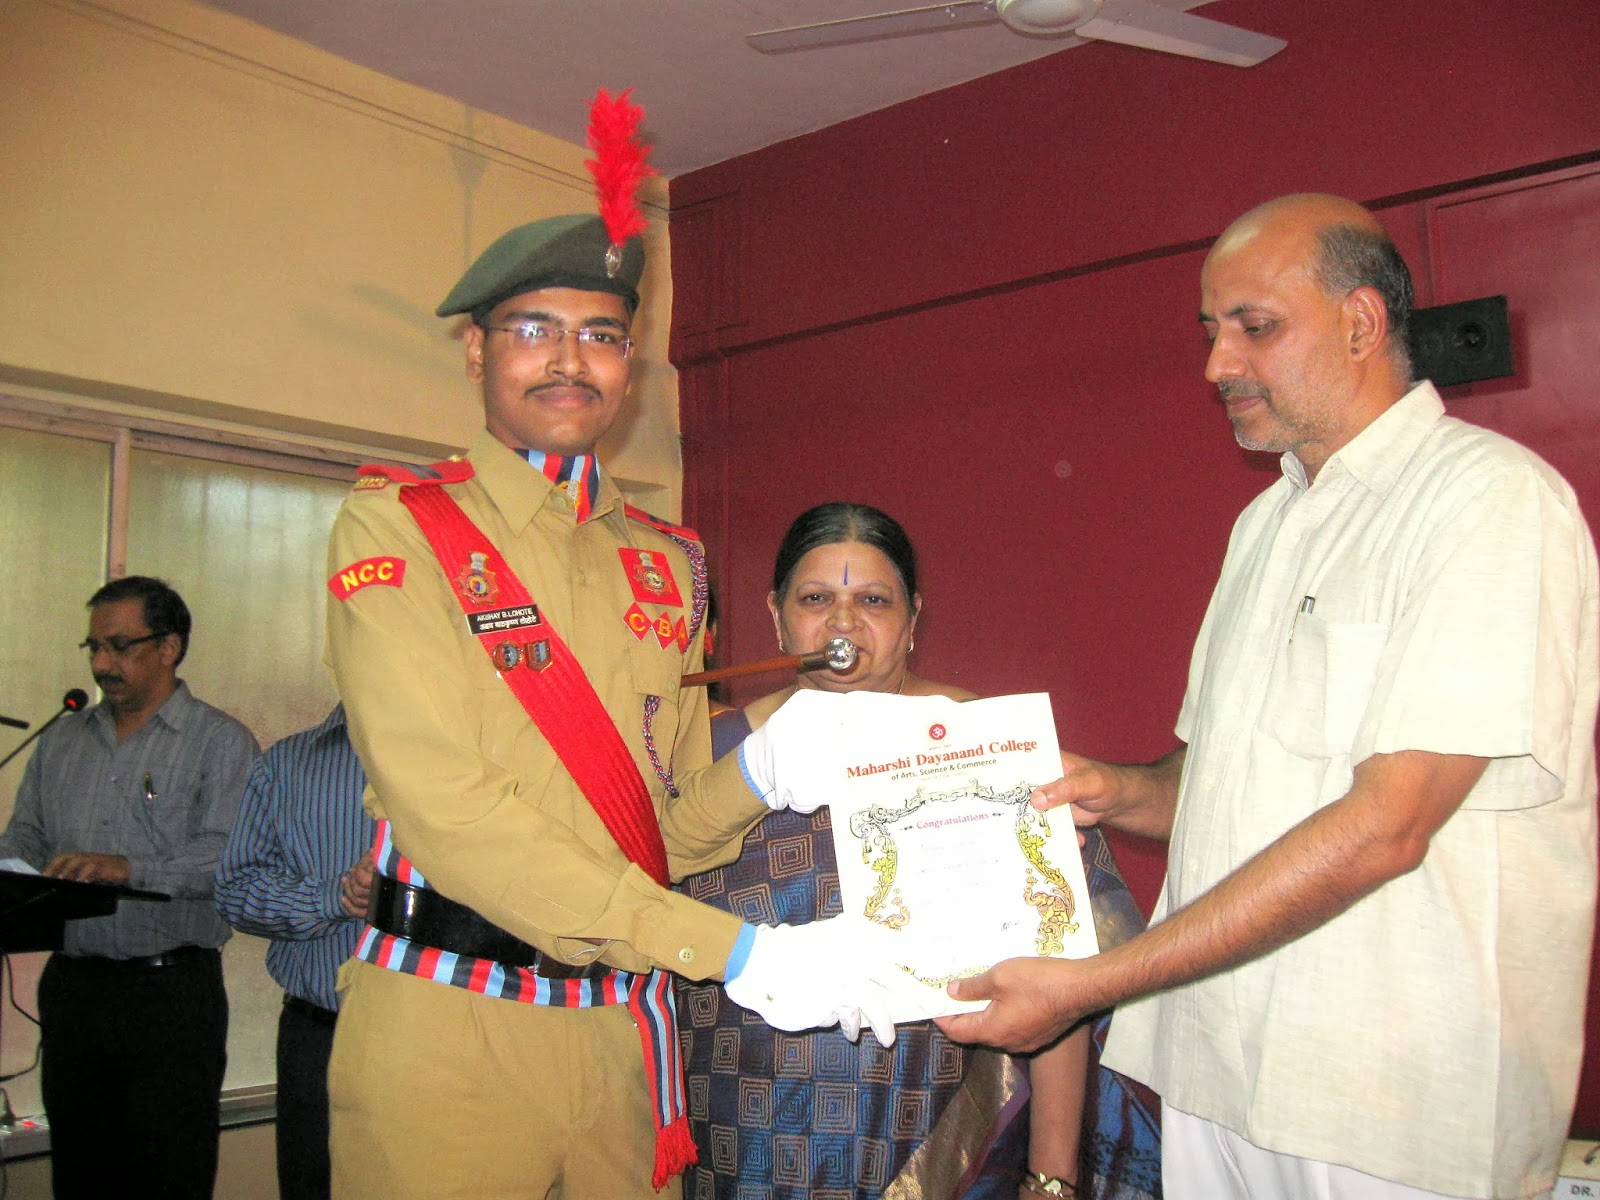 SUO Akshay Lohote, Prize for NCC Best Cadet of The Year 2013-14 with Principal Dr.T.P. Ghule, A.N. Tripathi (IAS) MSCPCR